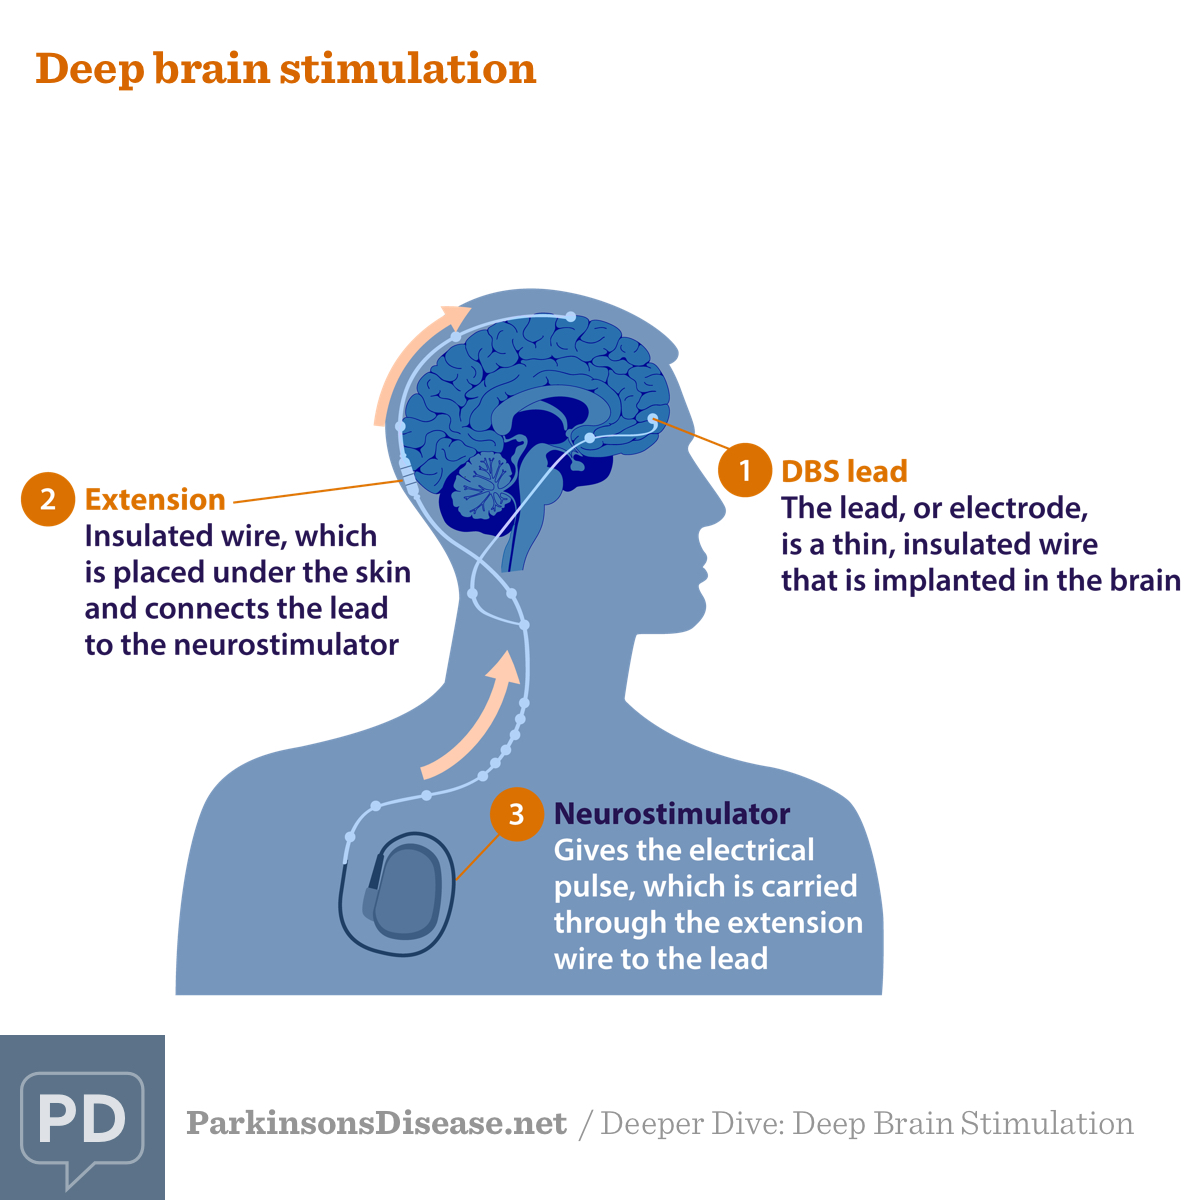 Components of deep brain stimulation, including the deep brain stimulation lead, extension, and neurostimulator